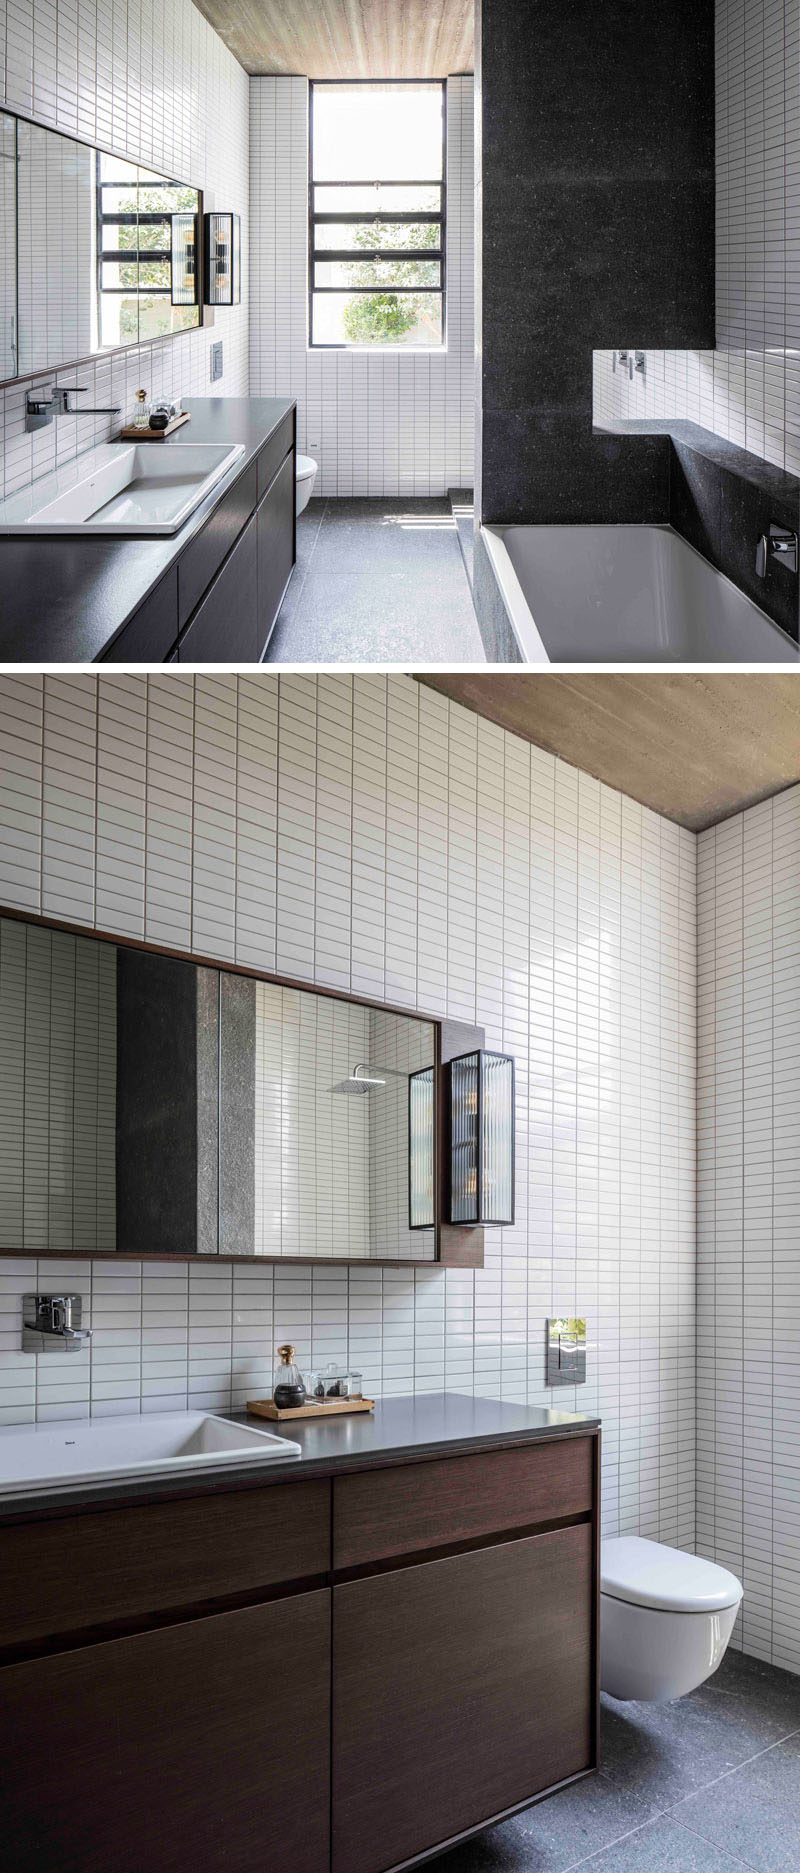 In this master bathroom, small white rectangular tiles cover the walls from floor-to-ceiling, and dark elements like the bath and vanity compliment the black window frames.